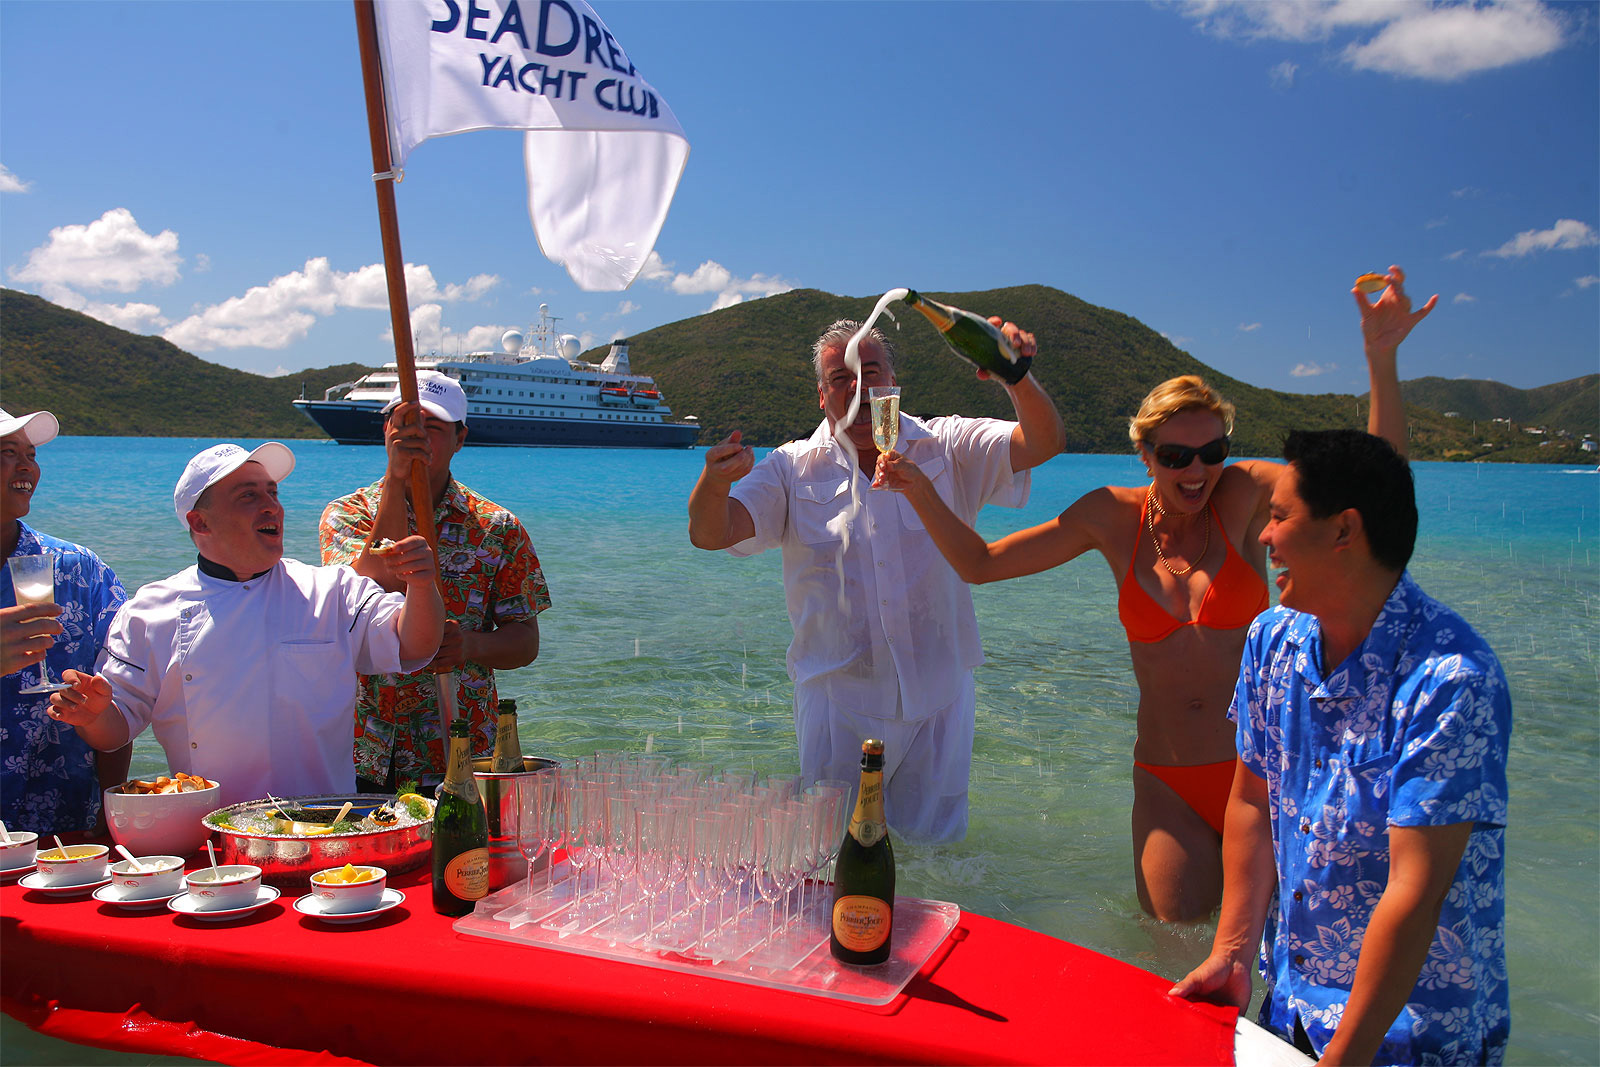 SeaDream-Yacht-Club-1